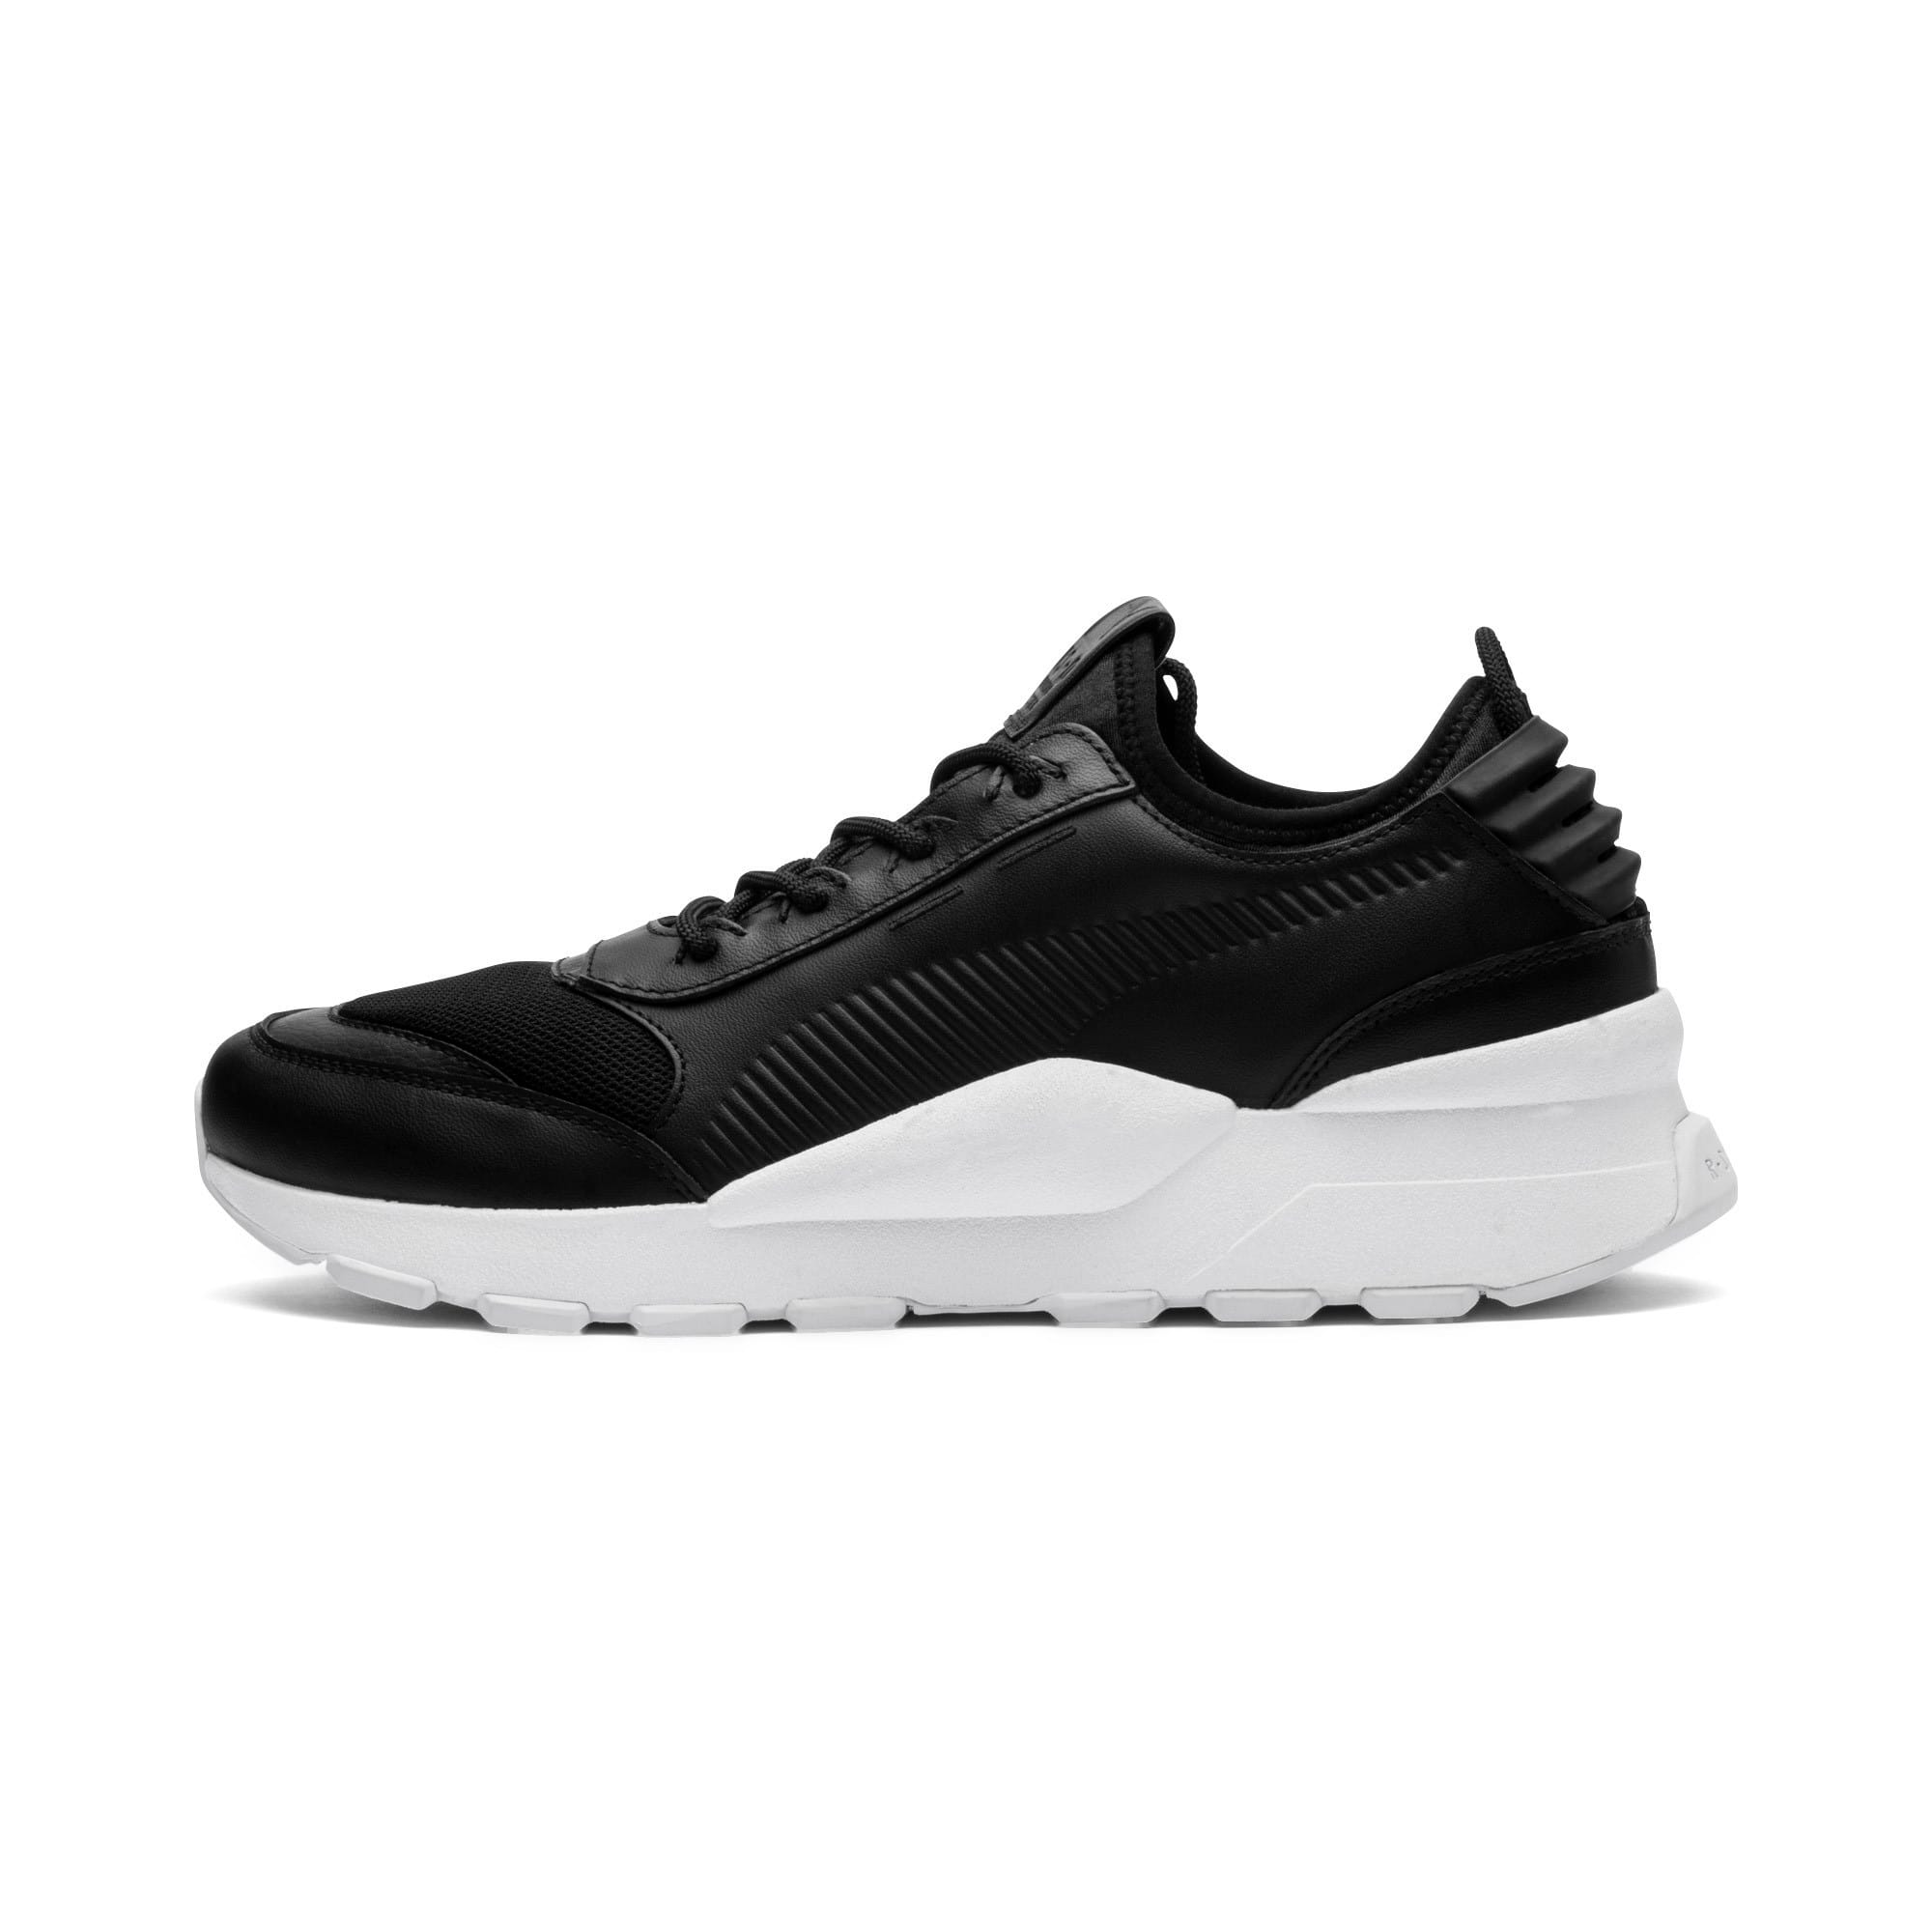 RS-0 SOUND Men's Sneakers, Puma Black, large